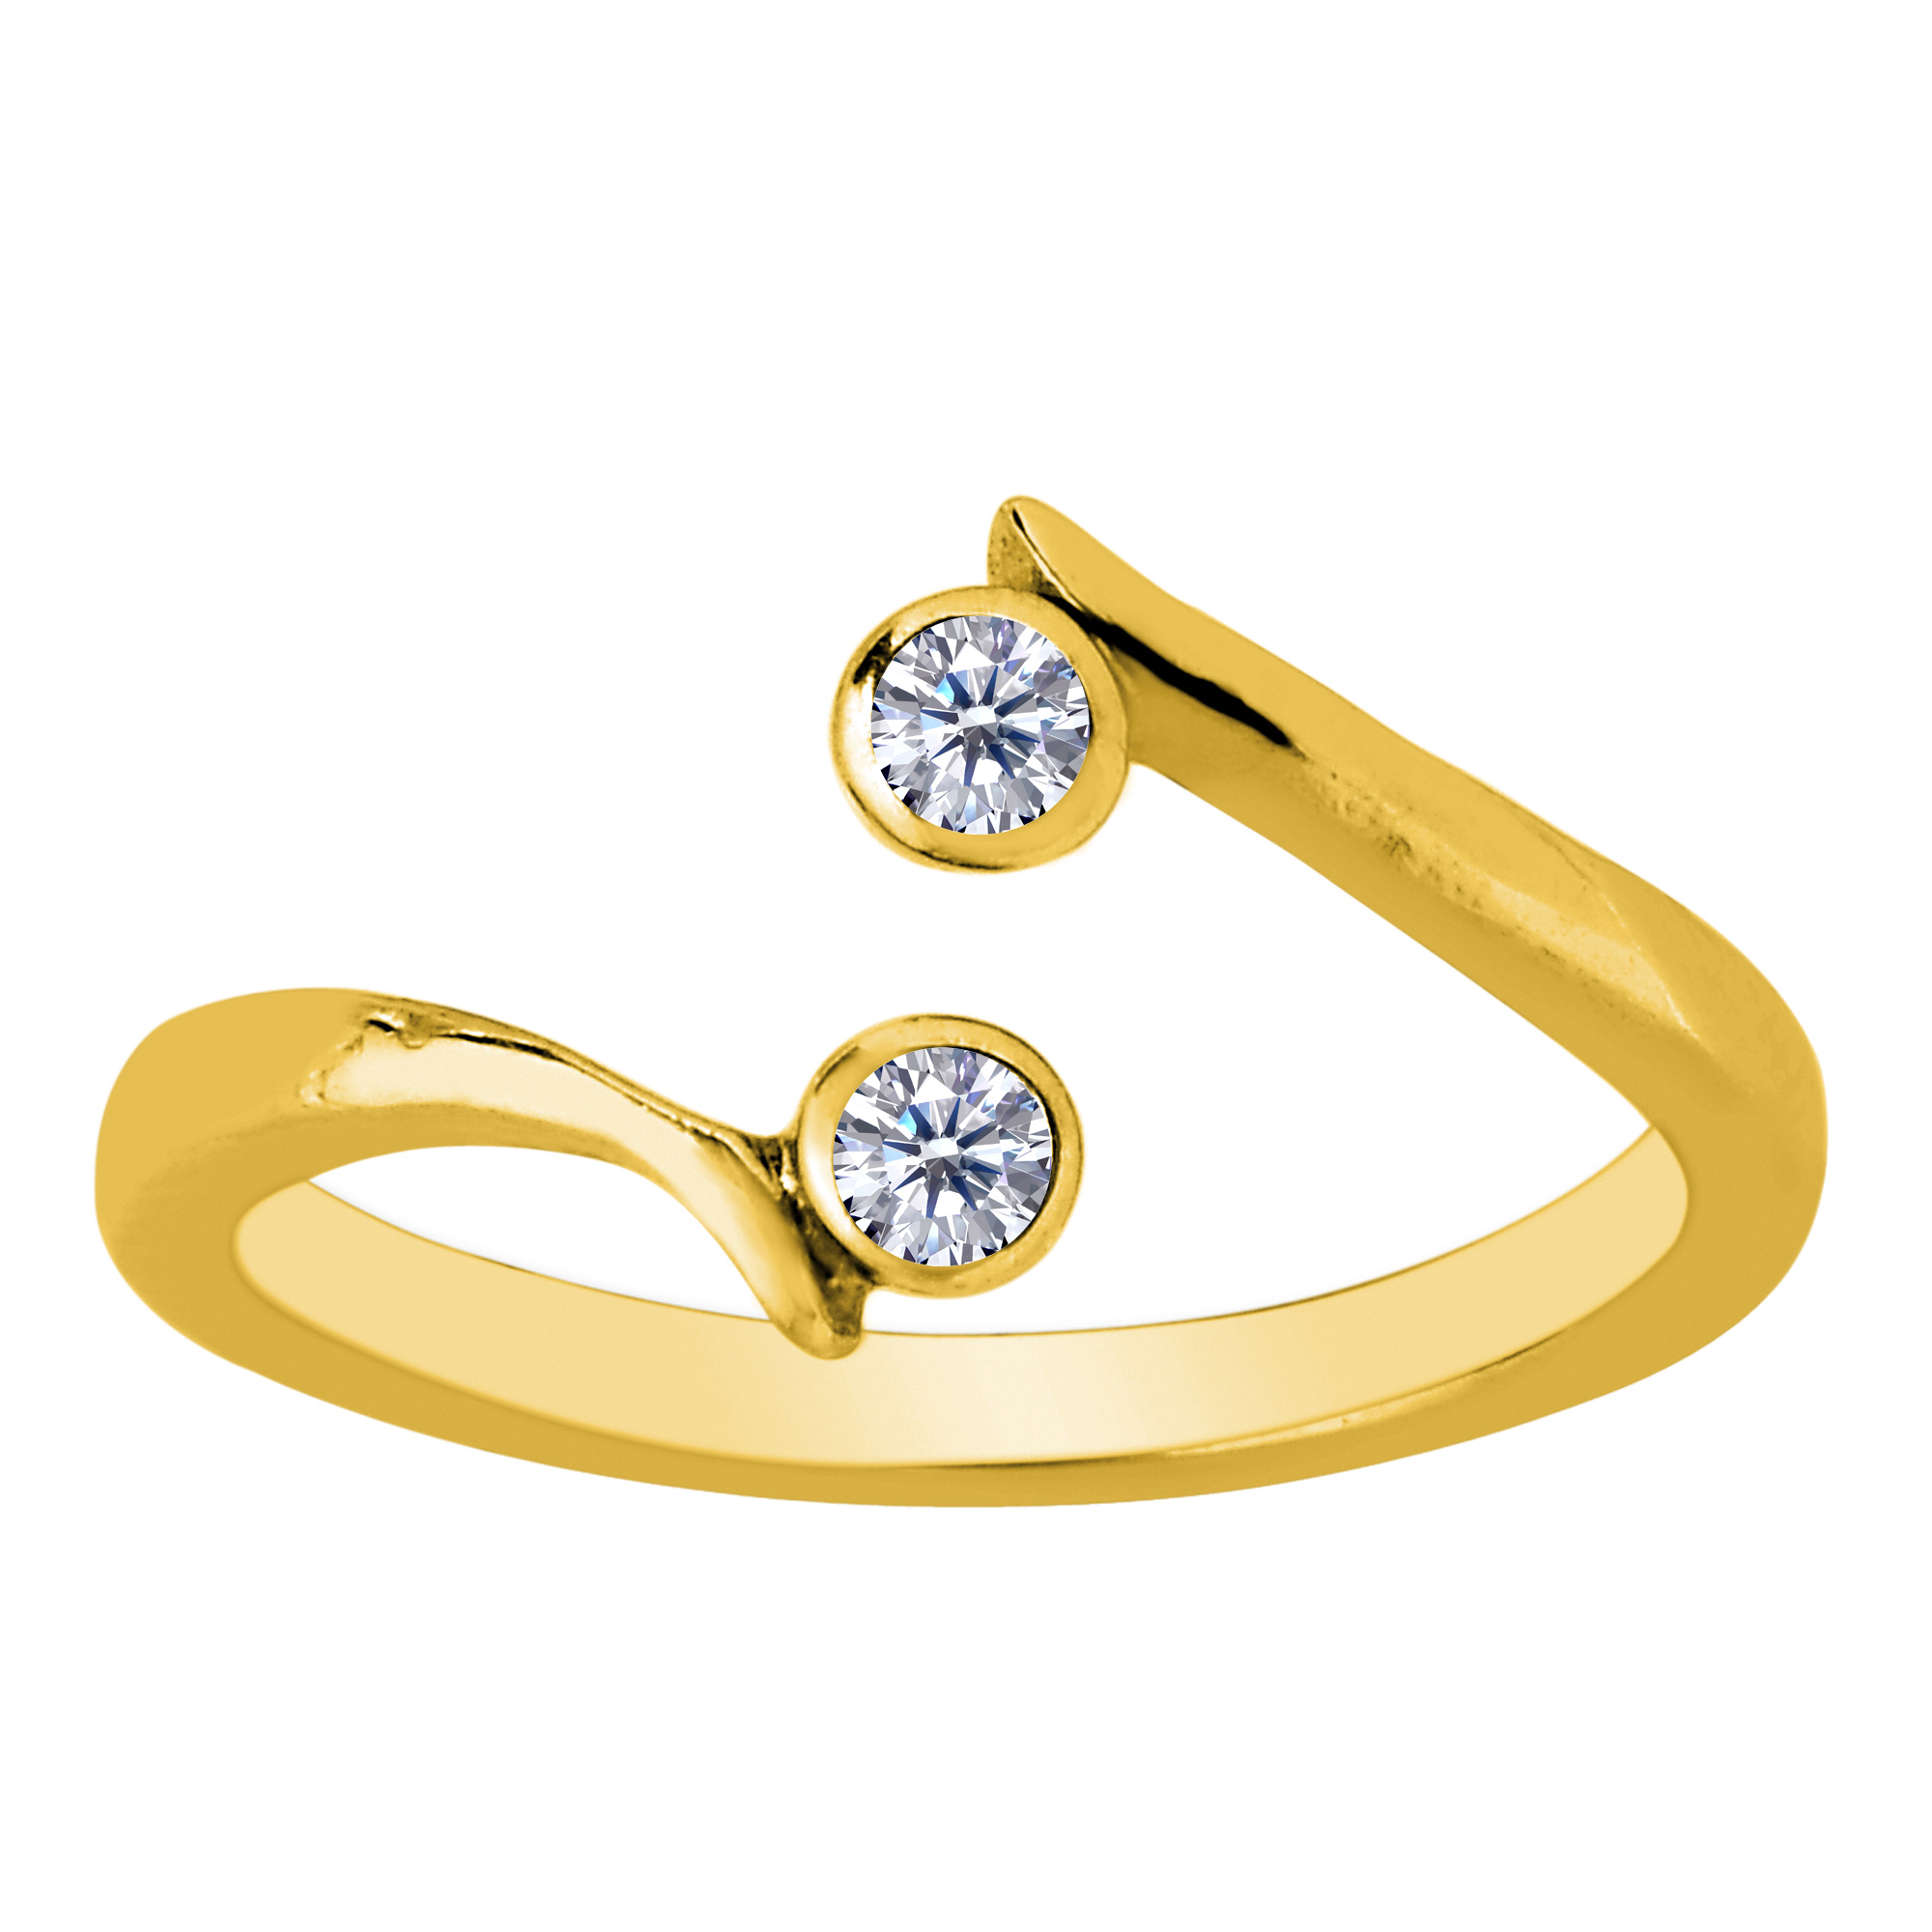 14K Yellow Gold Double Solitaire With CZ By Pass Style Adjustable Toe Ring Whether you're barefoot or in sandals, put your best foot forward and tip your toes with this adorable toe ring. Made with 14K yellow gold in a high polish finish and CZ stones, this double solitaire by pass style adjustable toe ring will make a great addition to anyone's jewelry collection.